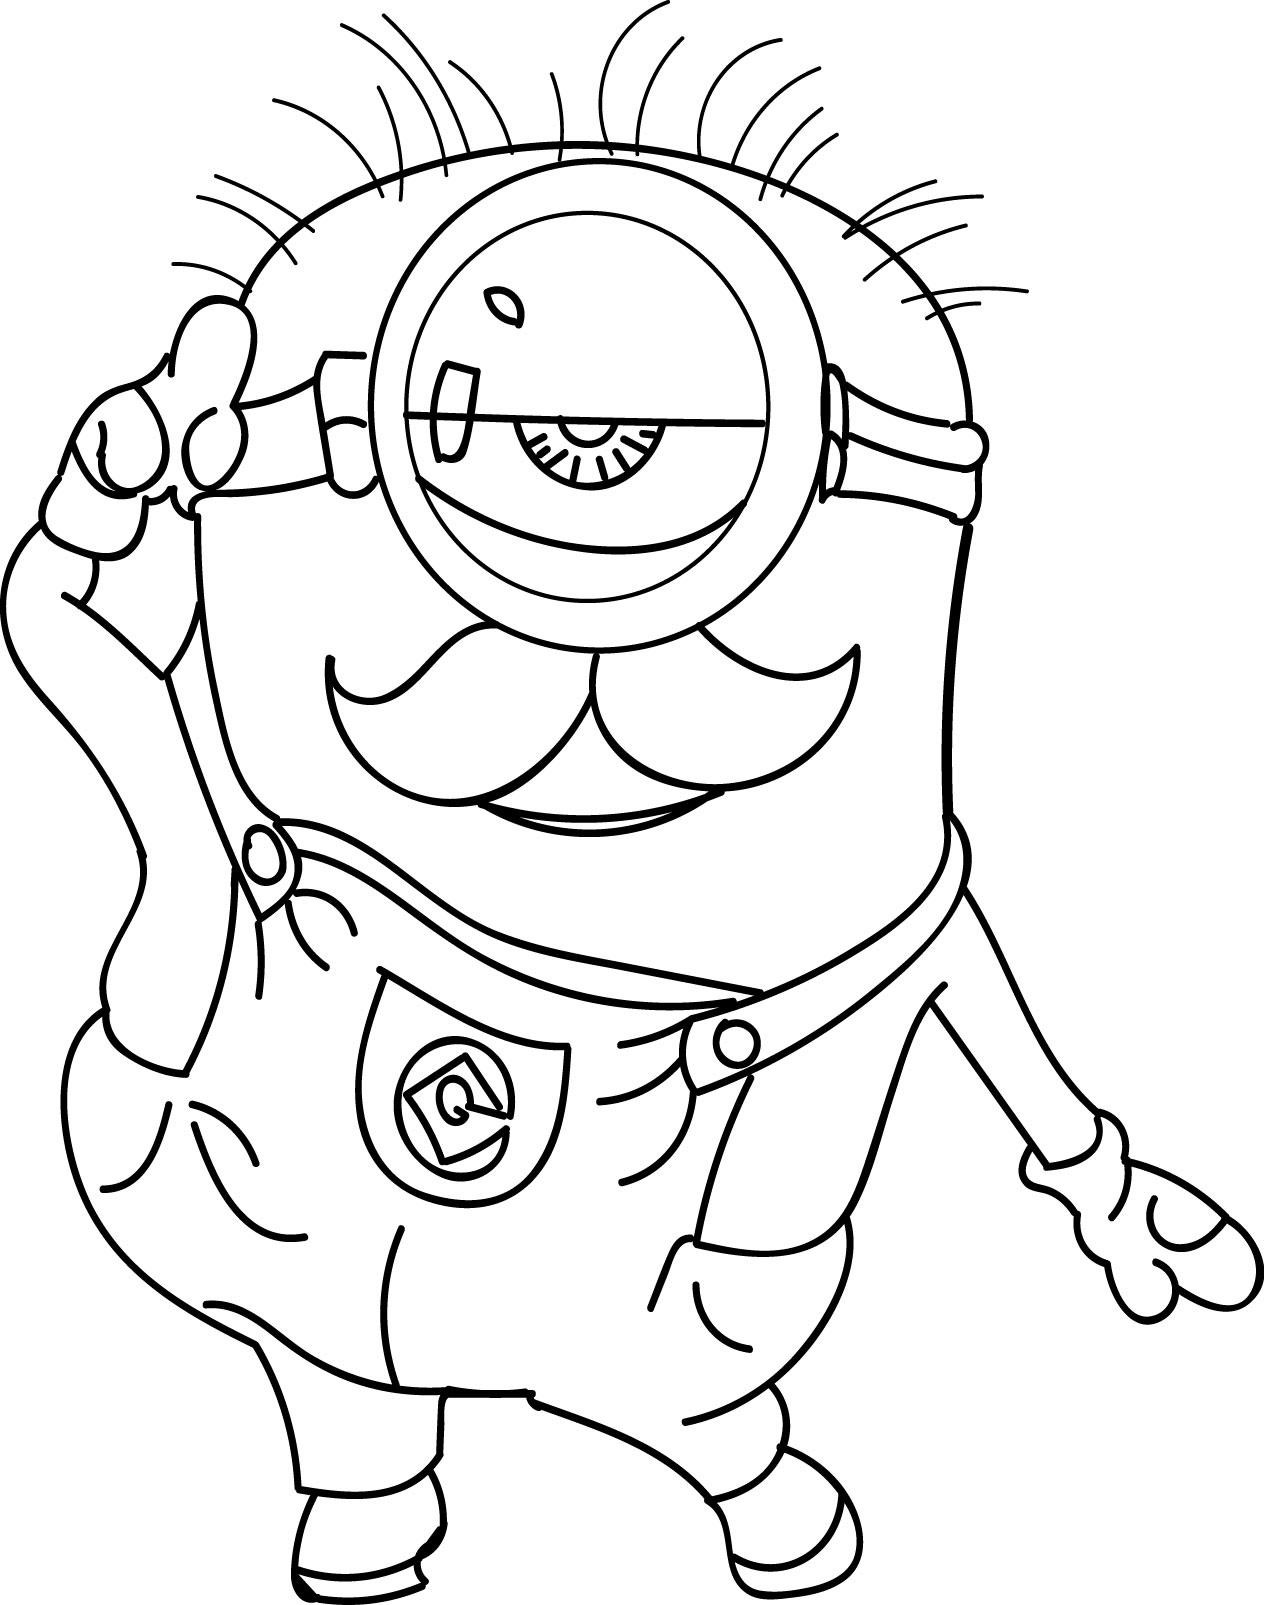 Minion-Coloring-Pages-Printable-Coloring-Pages-Coloring-Page-2